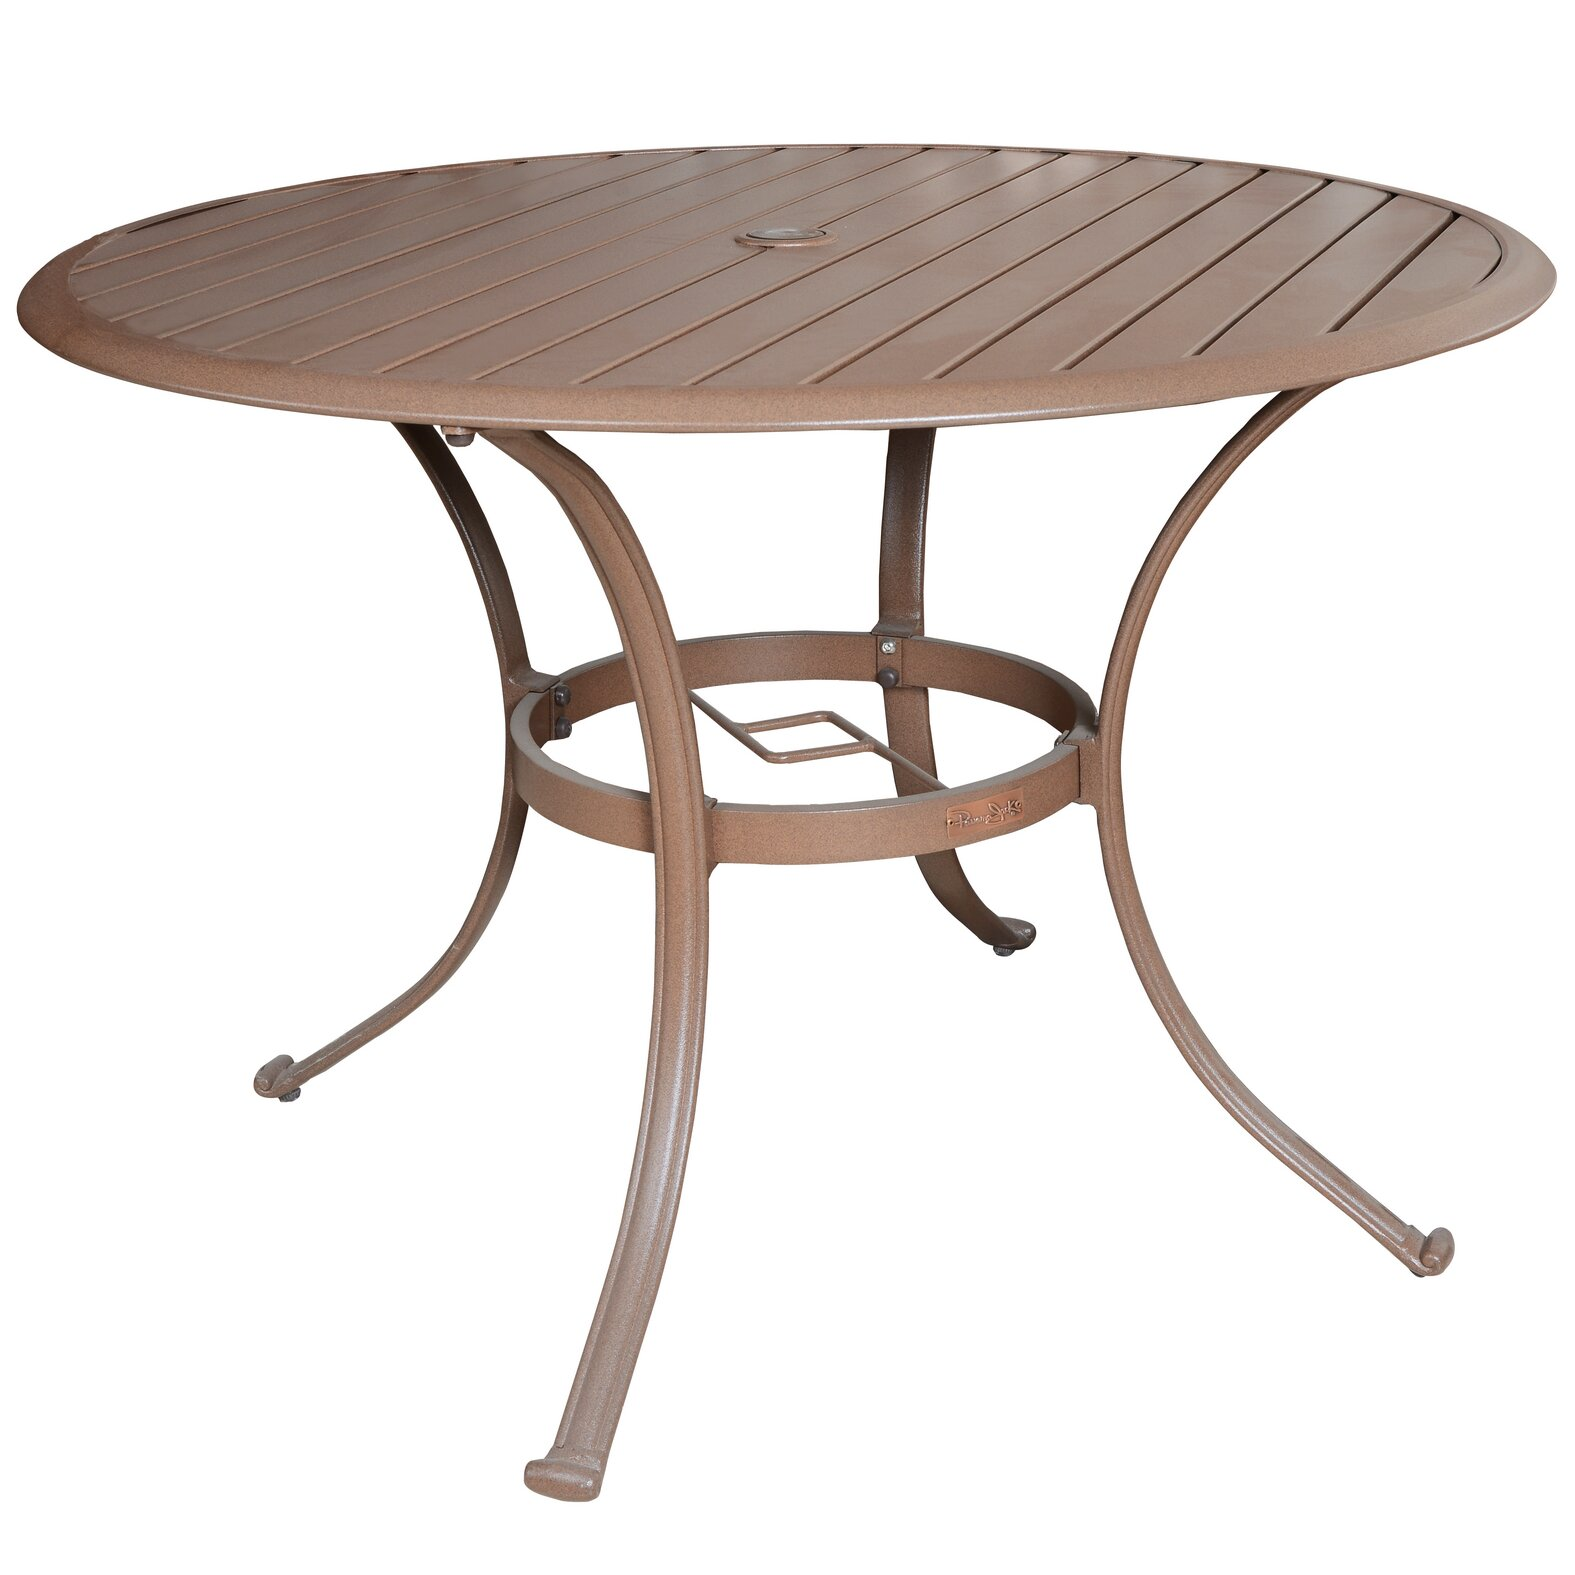 Ocean Breeze Patio Furniture Island Breeze Dining Table Pjo Esp